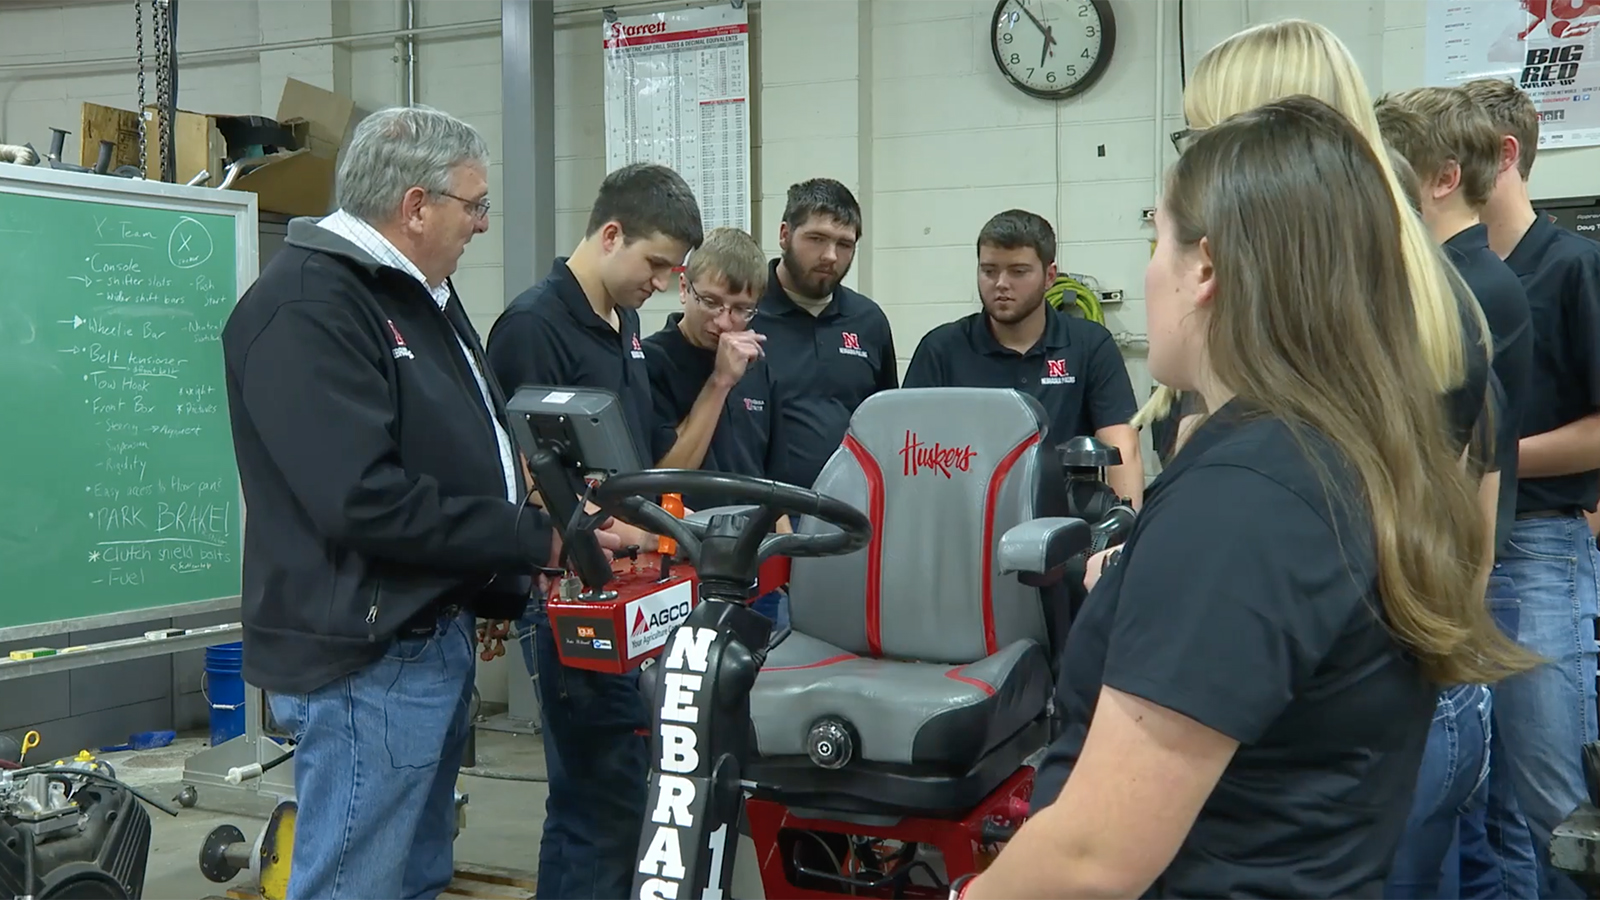 Nebraska quarter-scale tractor team works to repeat as international champions in 2020.